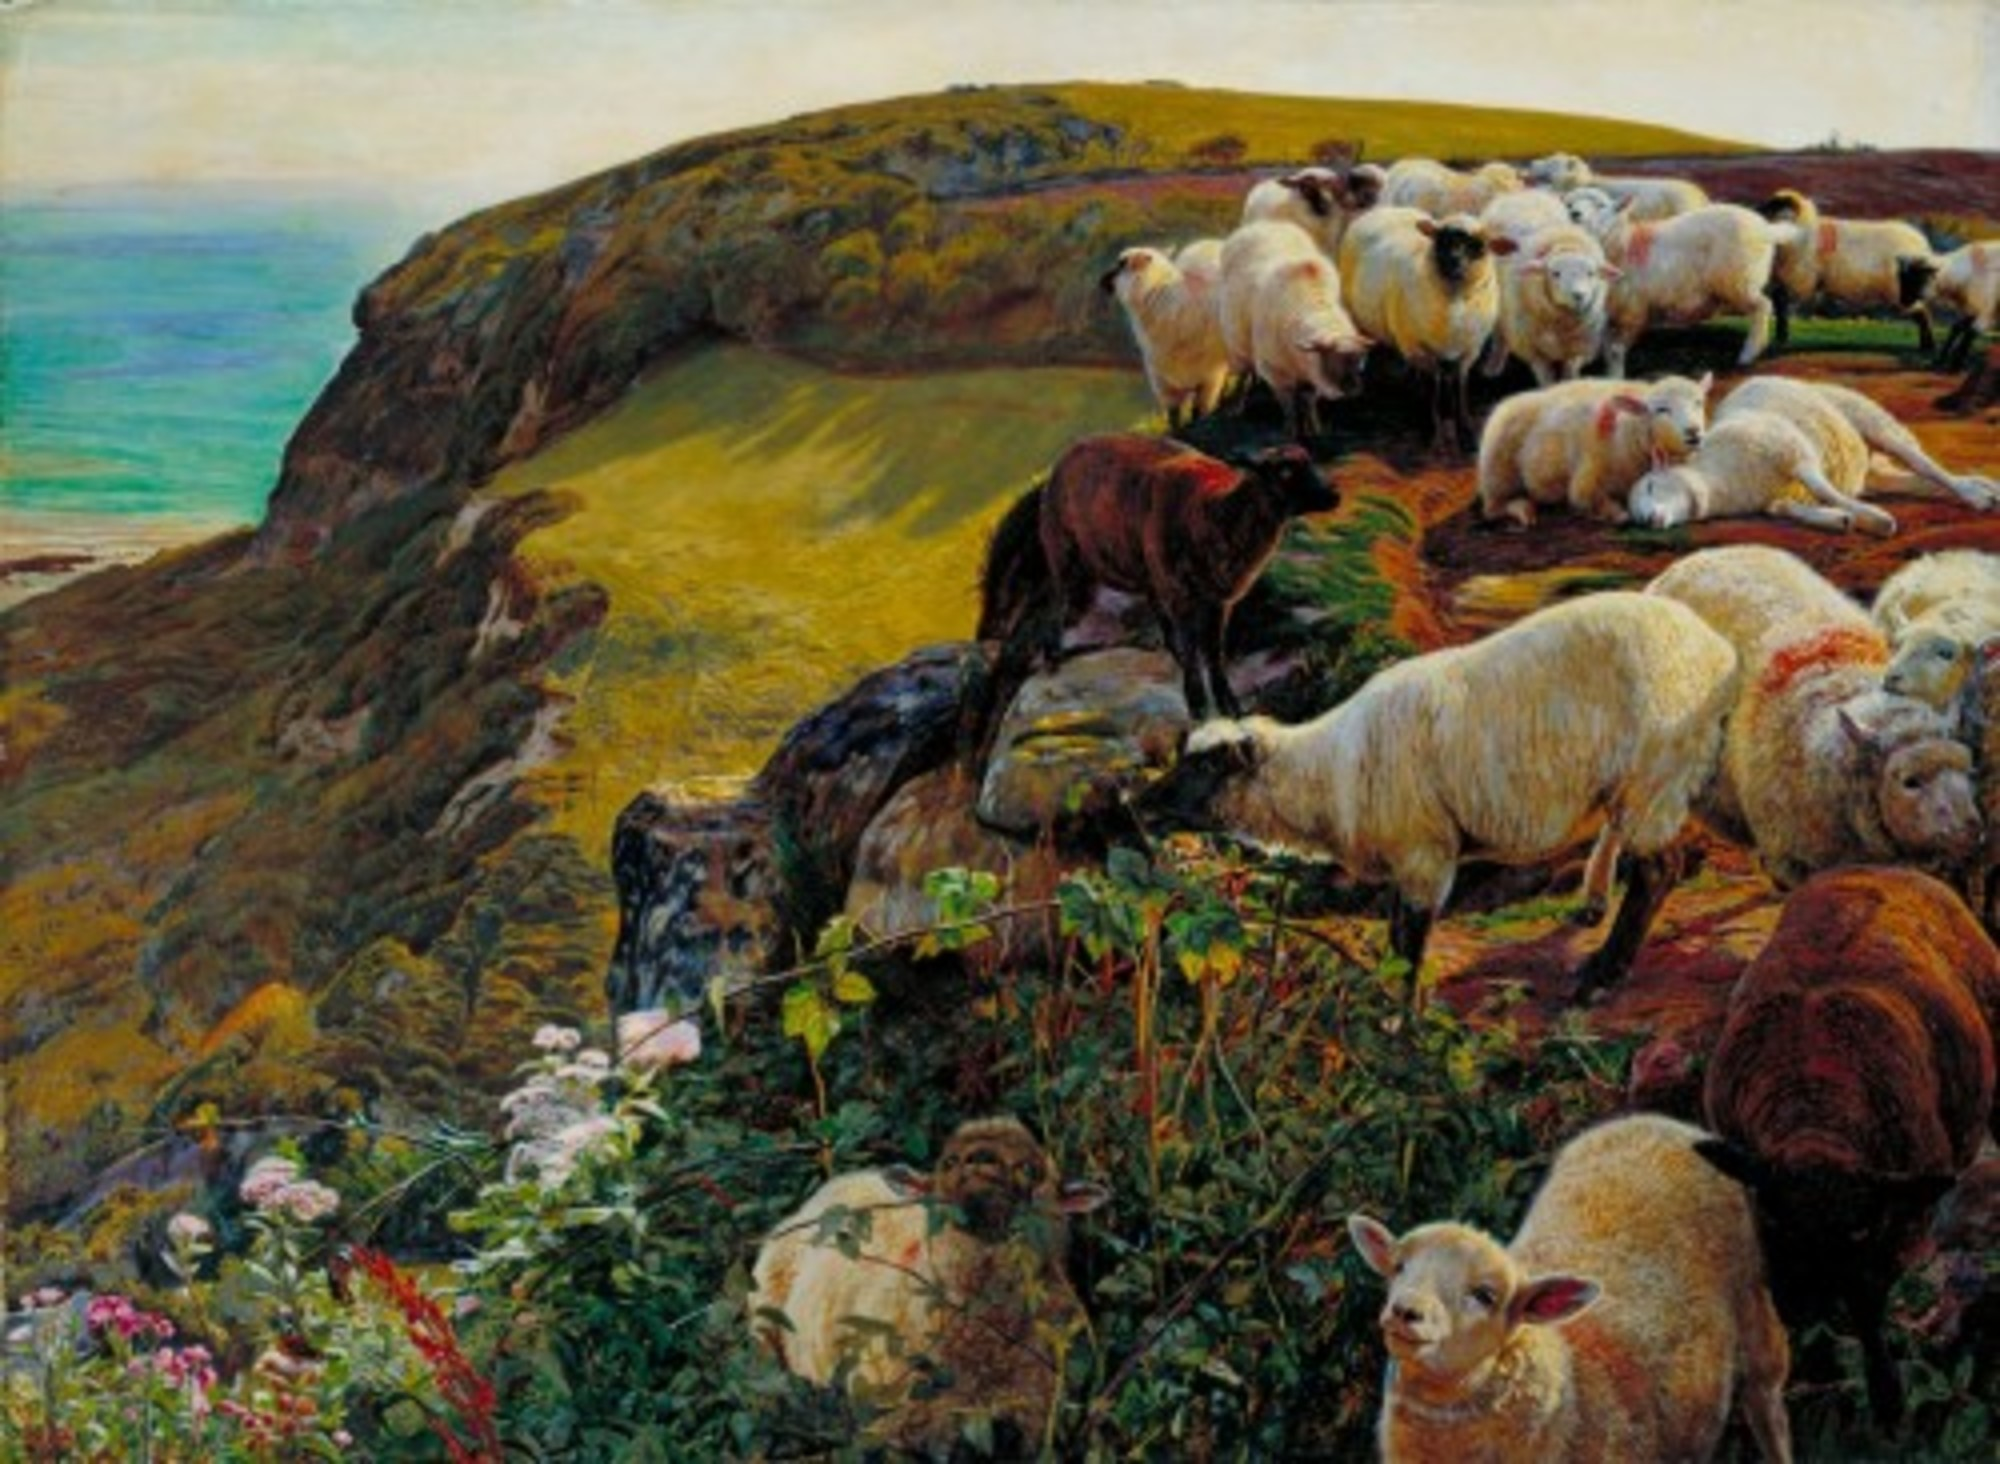 William-Holman-Hunt---Our-English-Coasts-1852-Strayed-Sheep-Tate-Britain.jpg